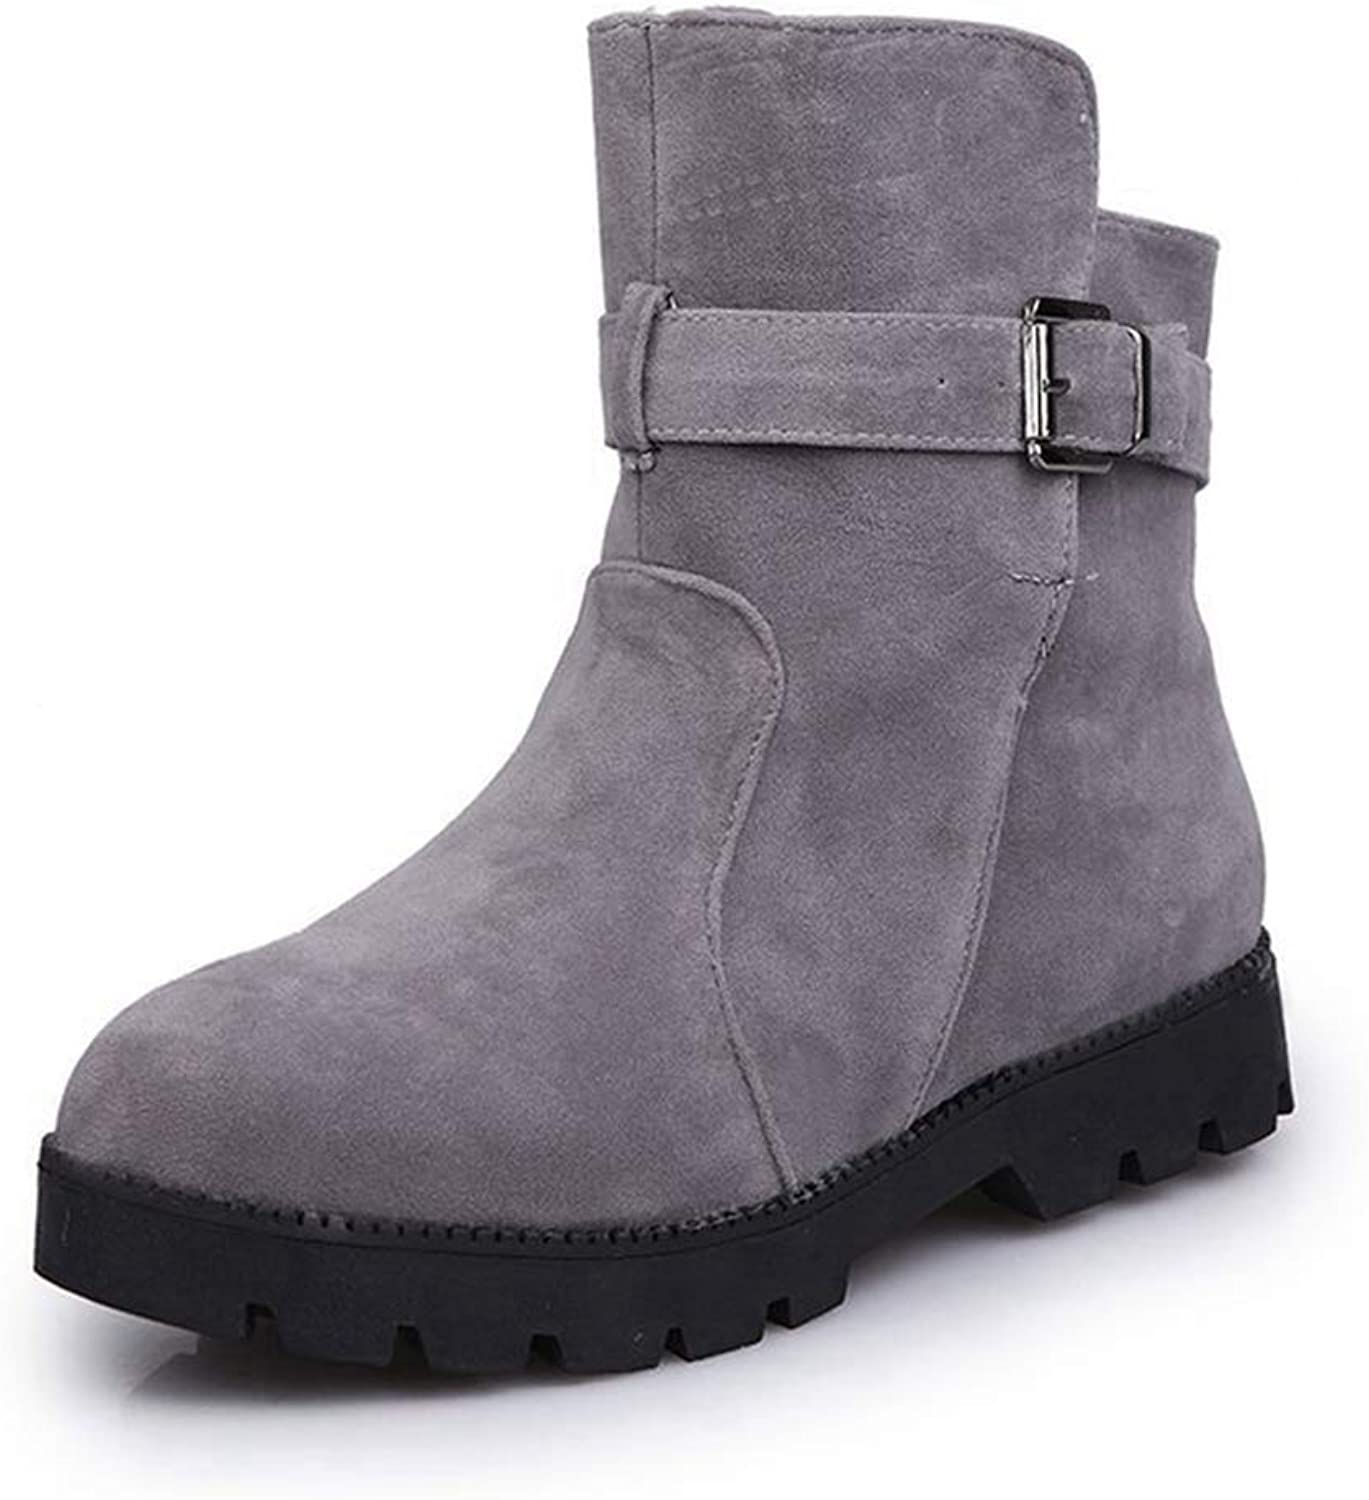 CYBLING Women's Round Toe Buckle Strap Short Boots Western Low Heel Ankle Booties shoes